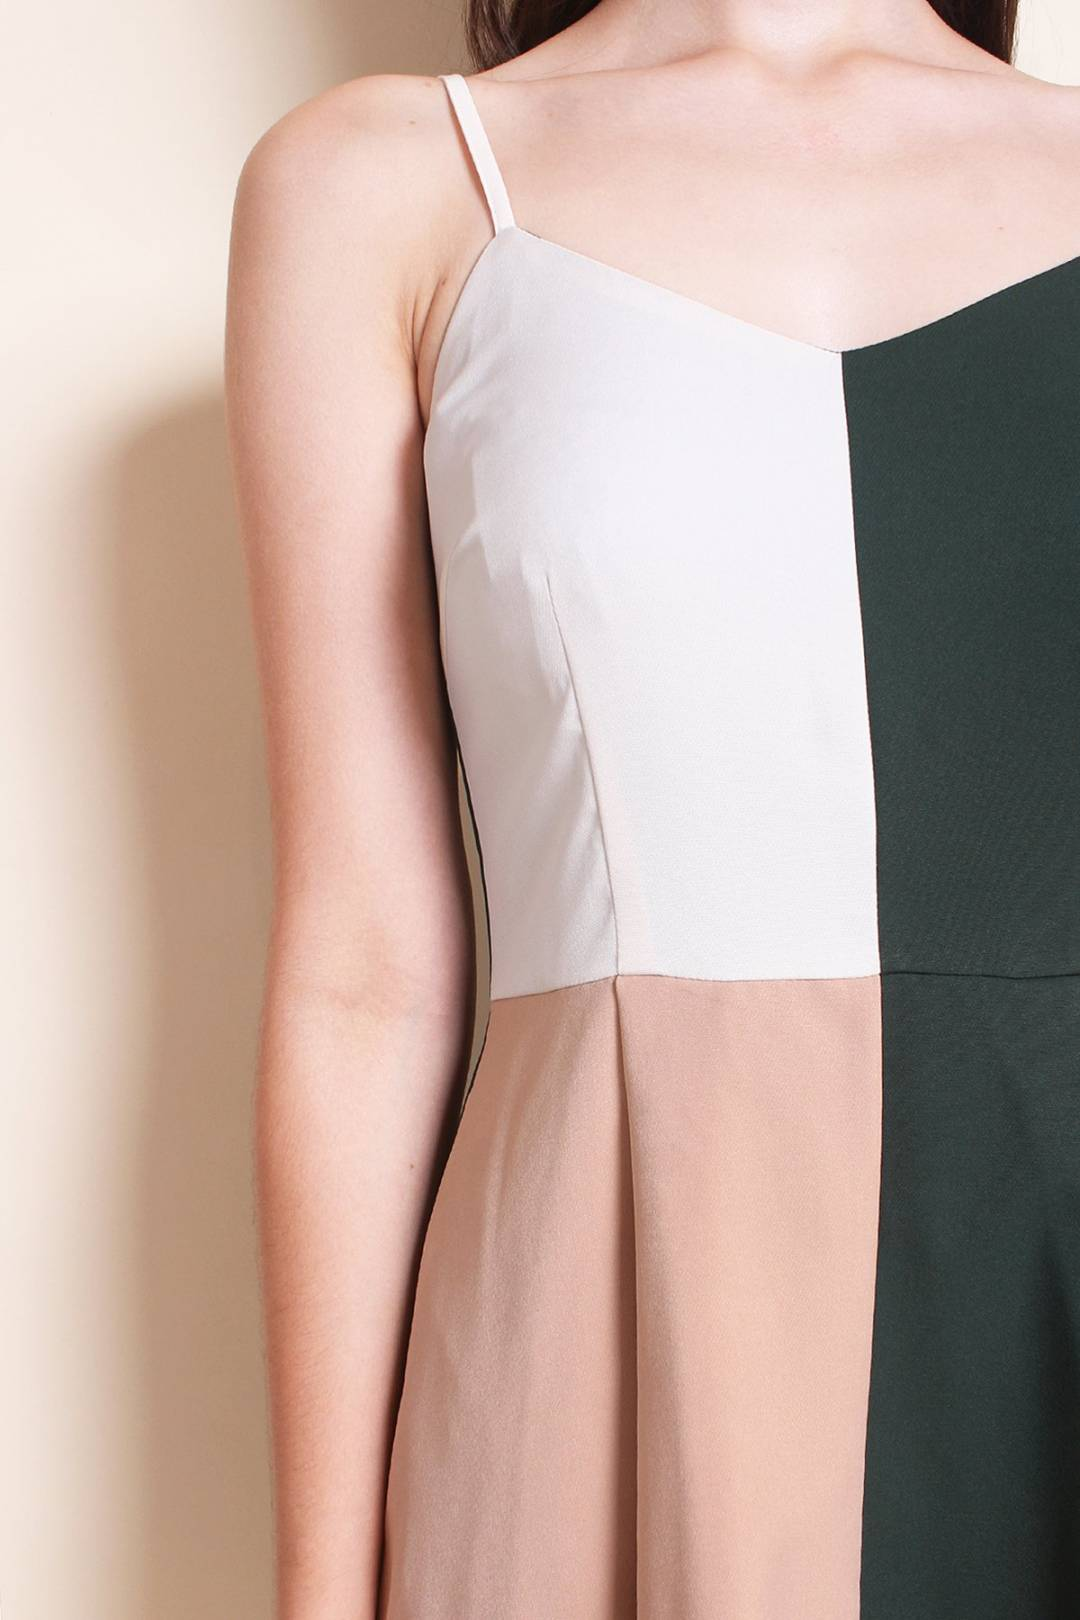 LEONIE COLOURBLOCK SPAG WORK DRESS IN FOREST/NUDE [XS/S/M/L]